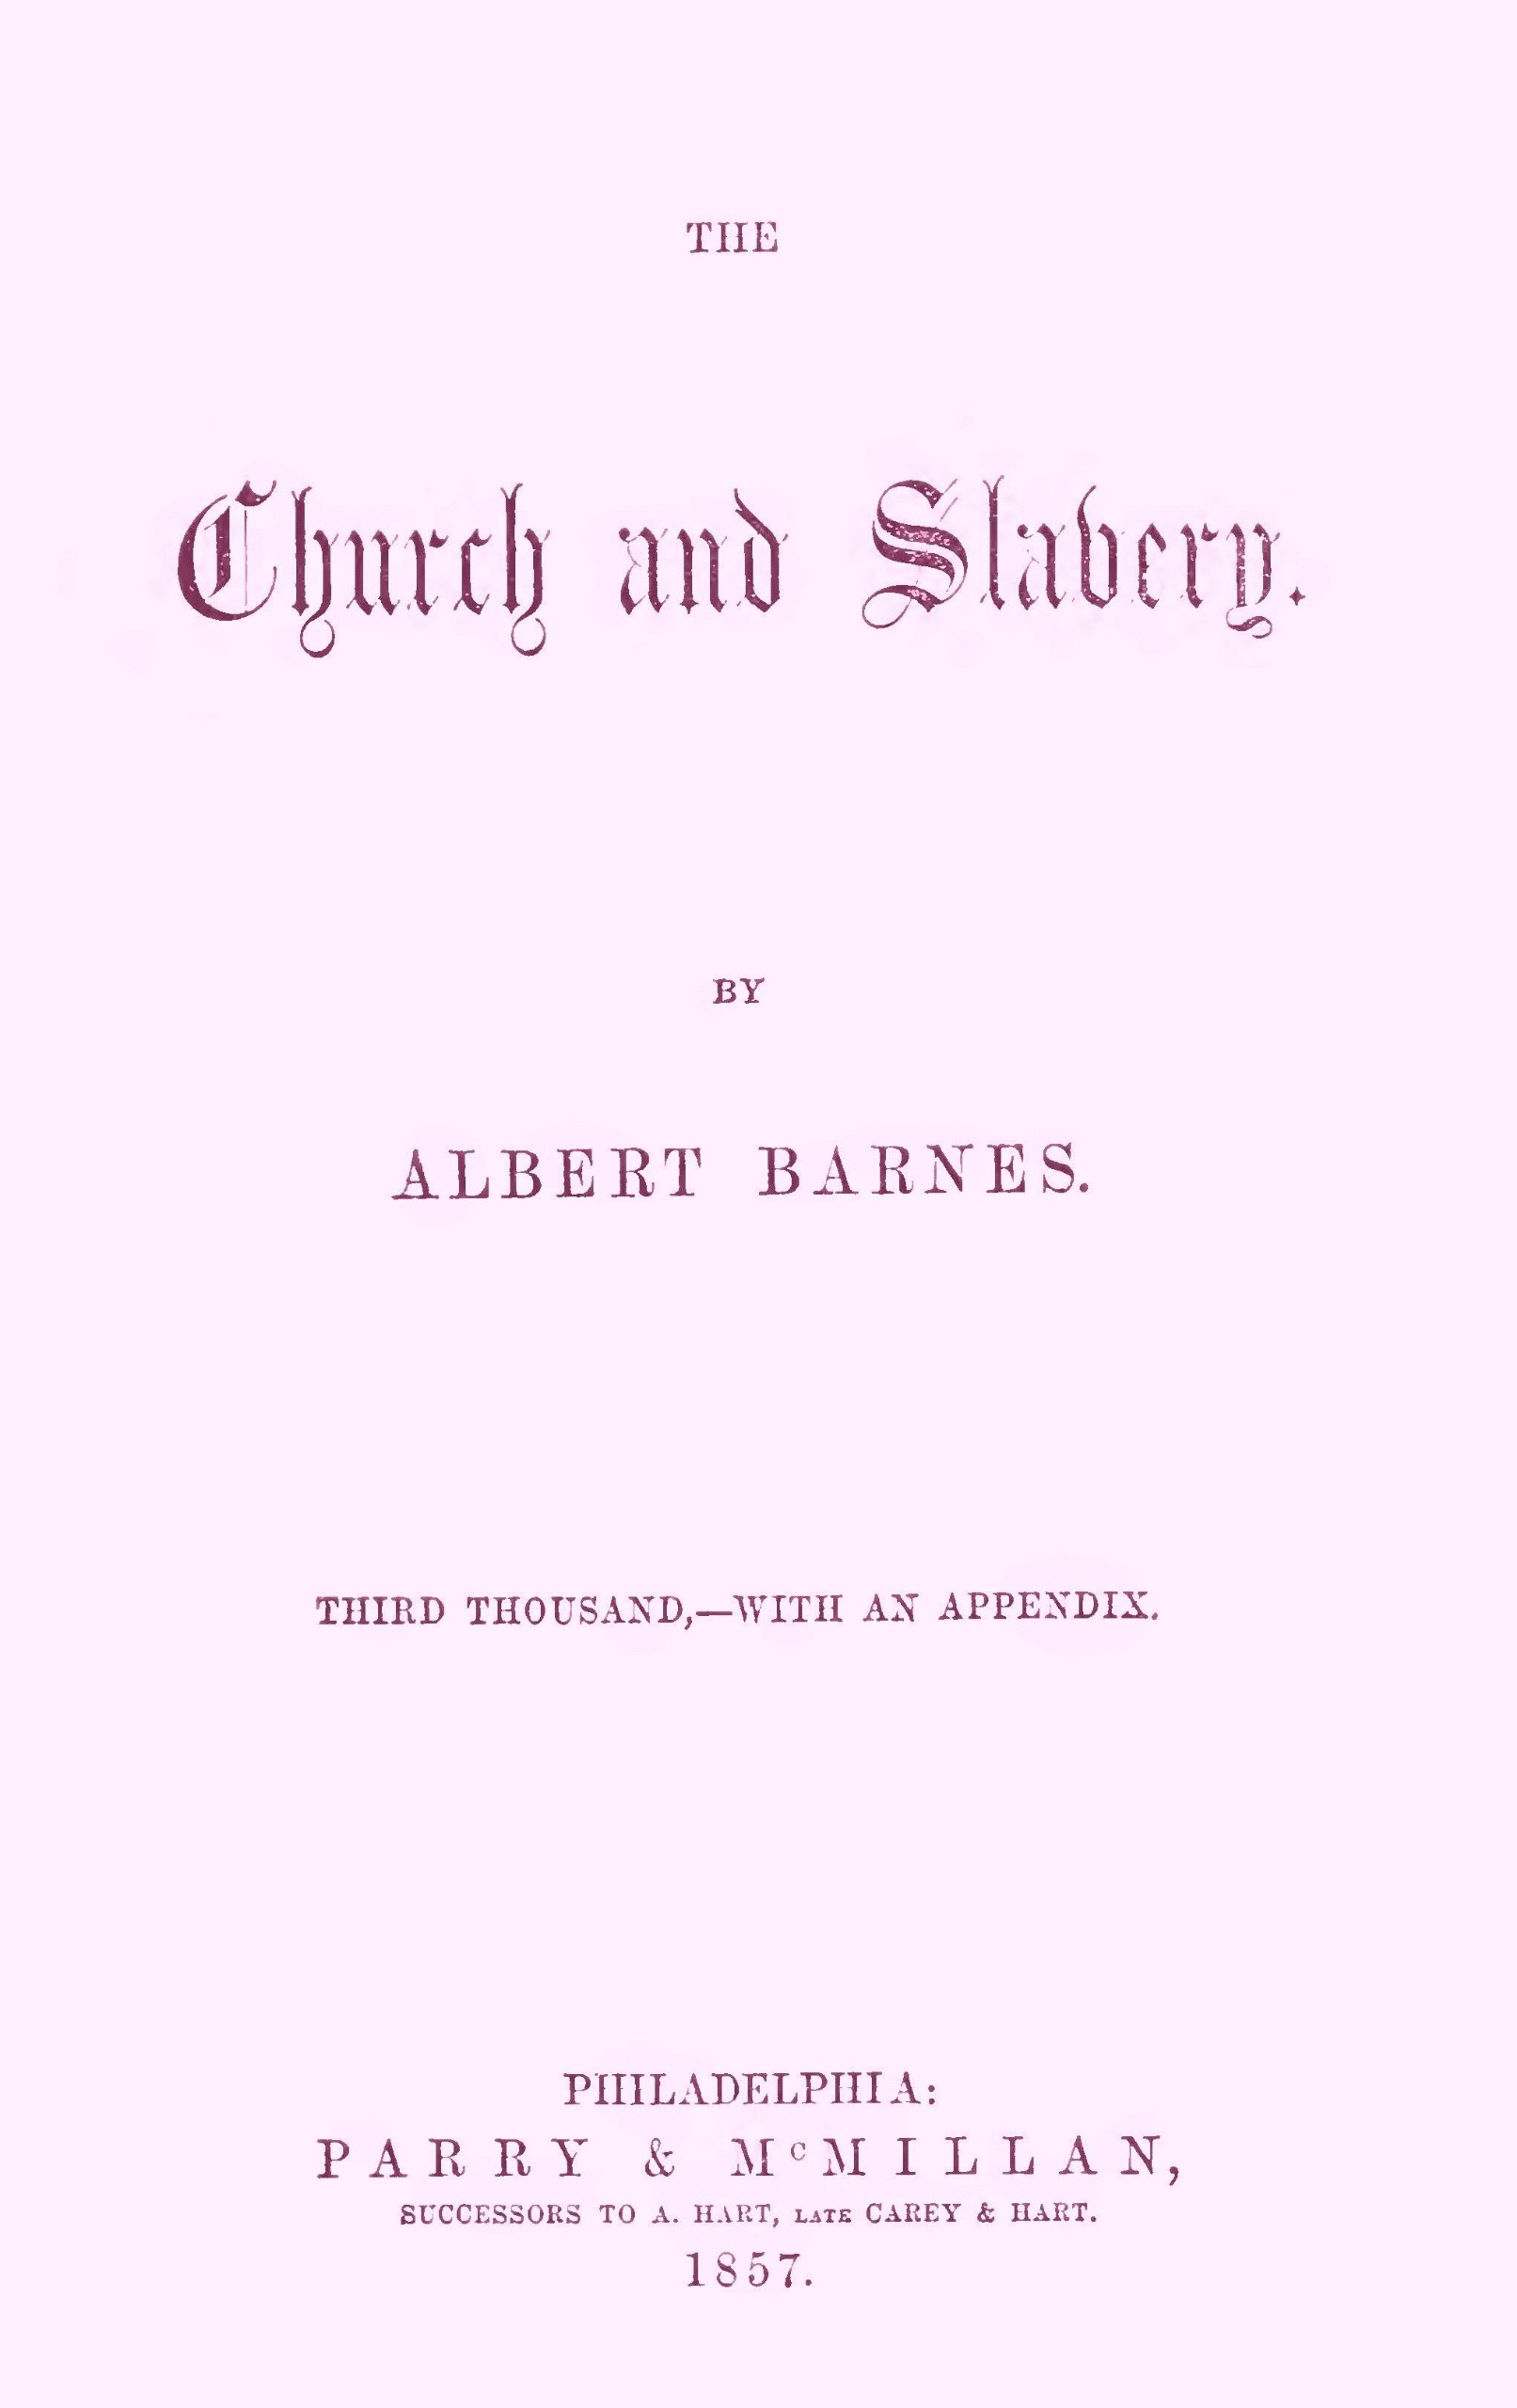 Download THE CHURCH AND SLAVERY BY ALBERT BARNES. WITH AN APPENDIX. PHILADELPHIA 1857 (STUDENT FACSIMILE) pdf